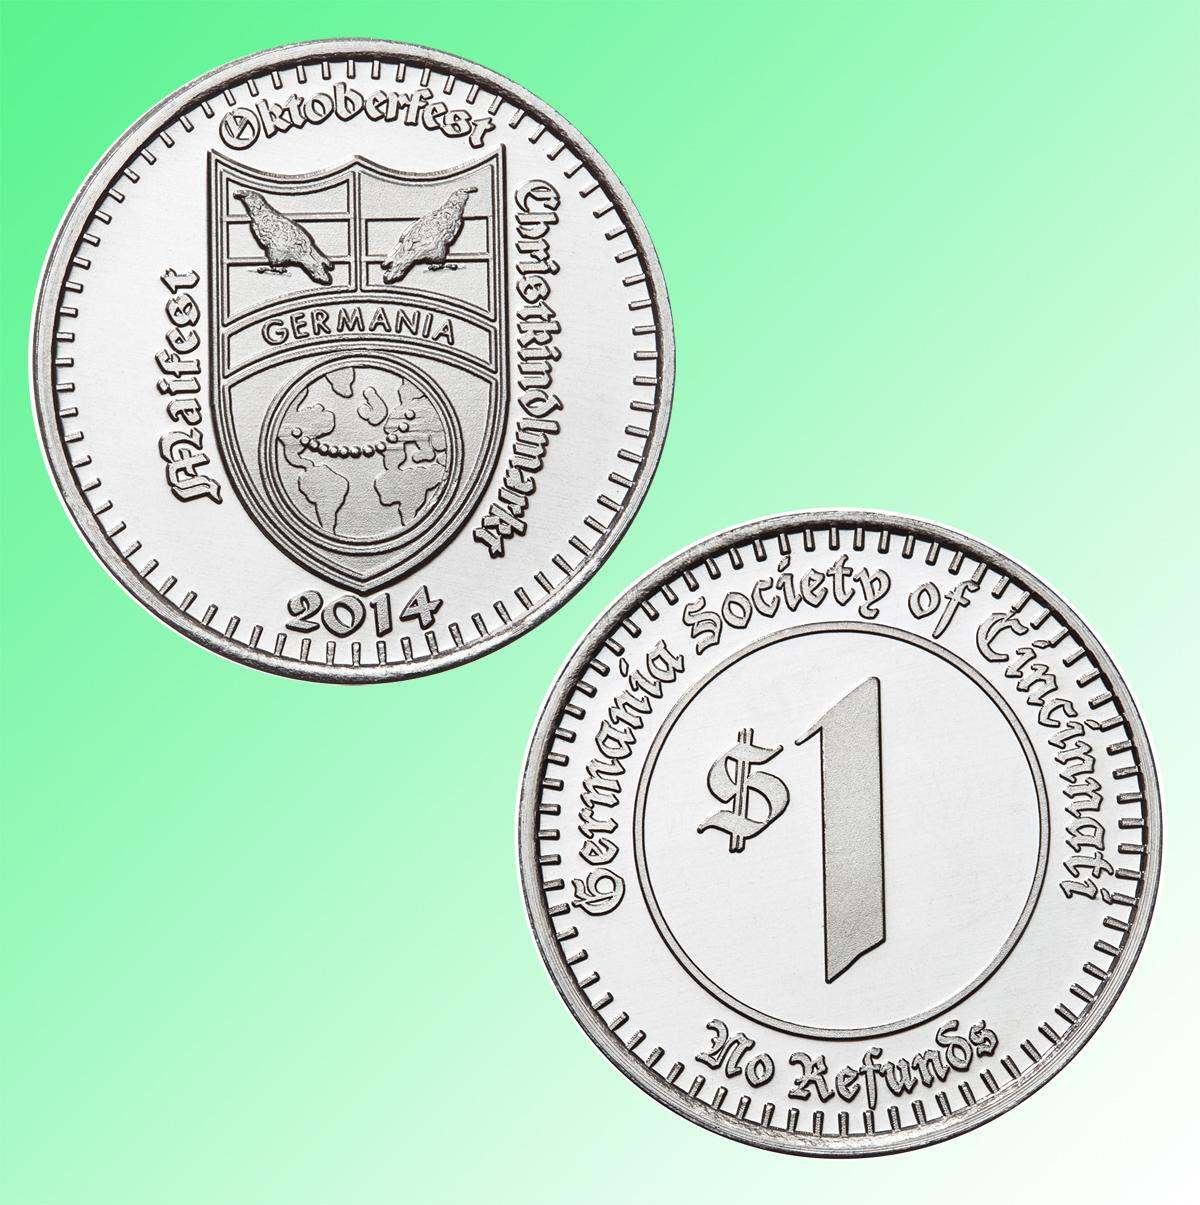 Germania Oktoberfest custom aluminum tokens